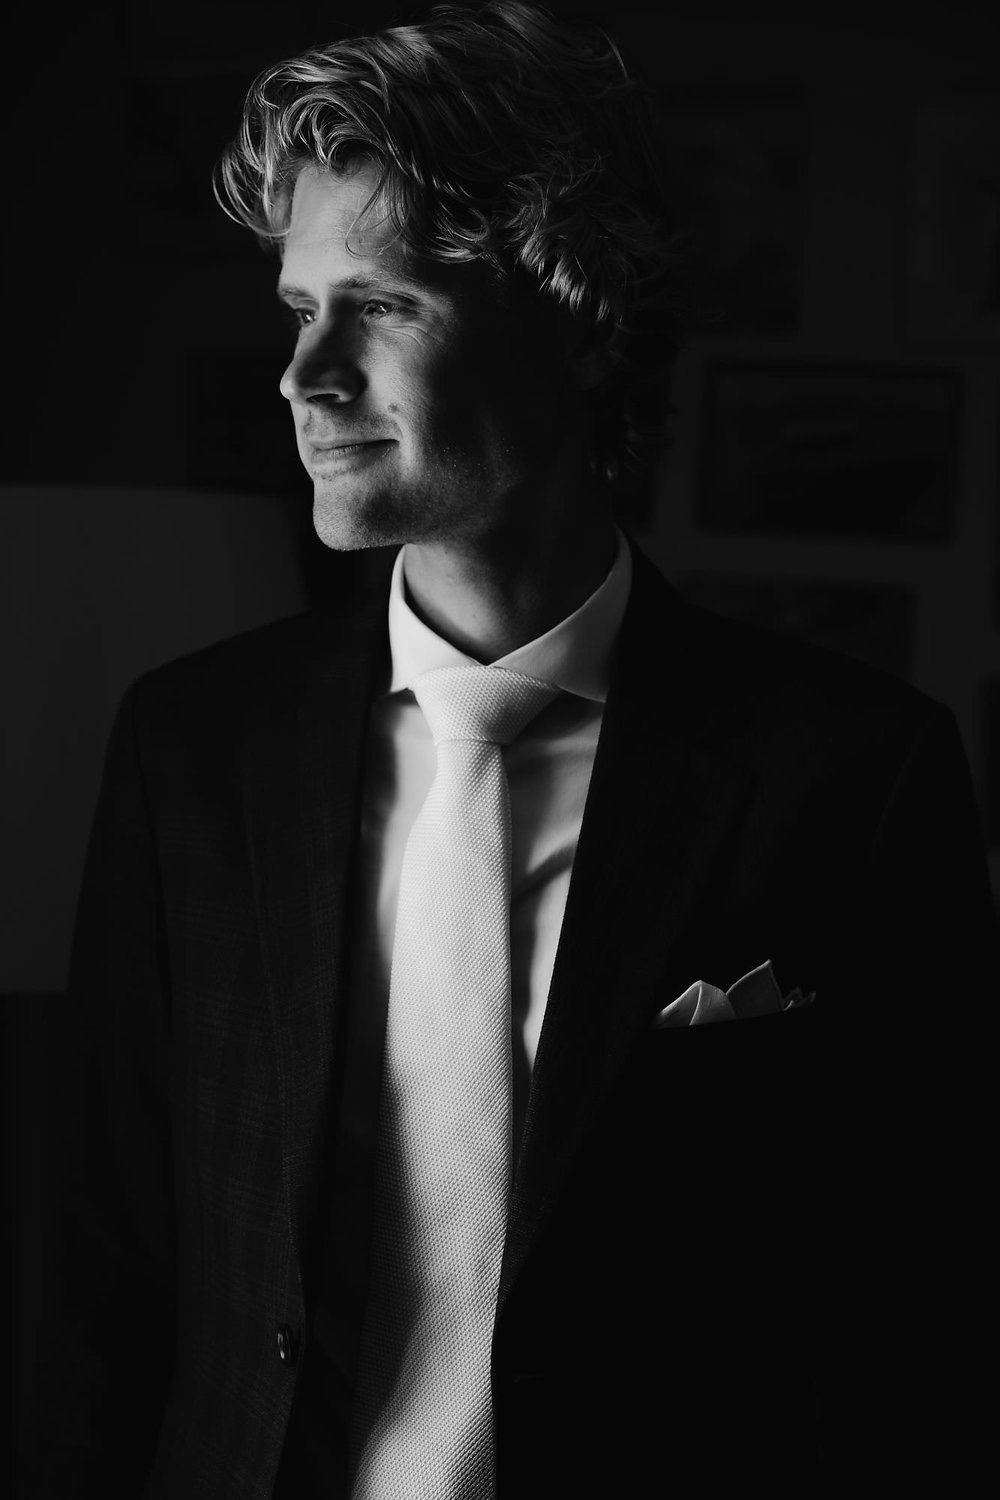 groom prep portrait in utrecht by mark hadden wedding photographer